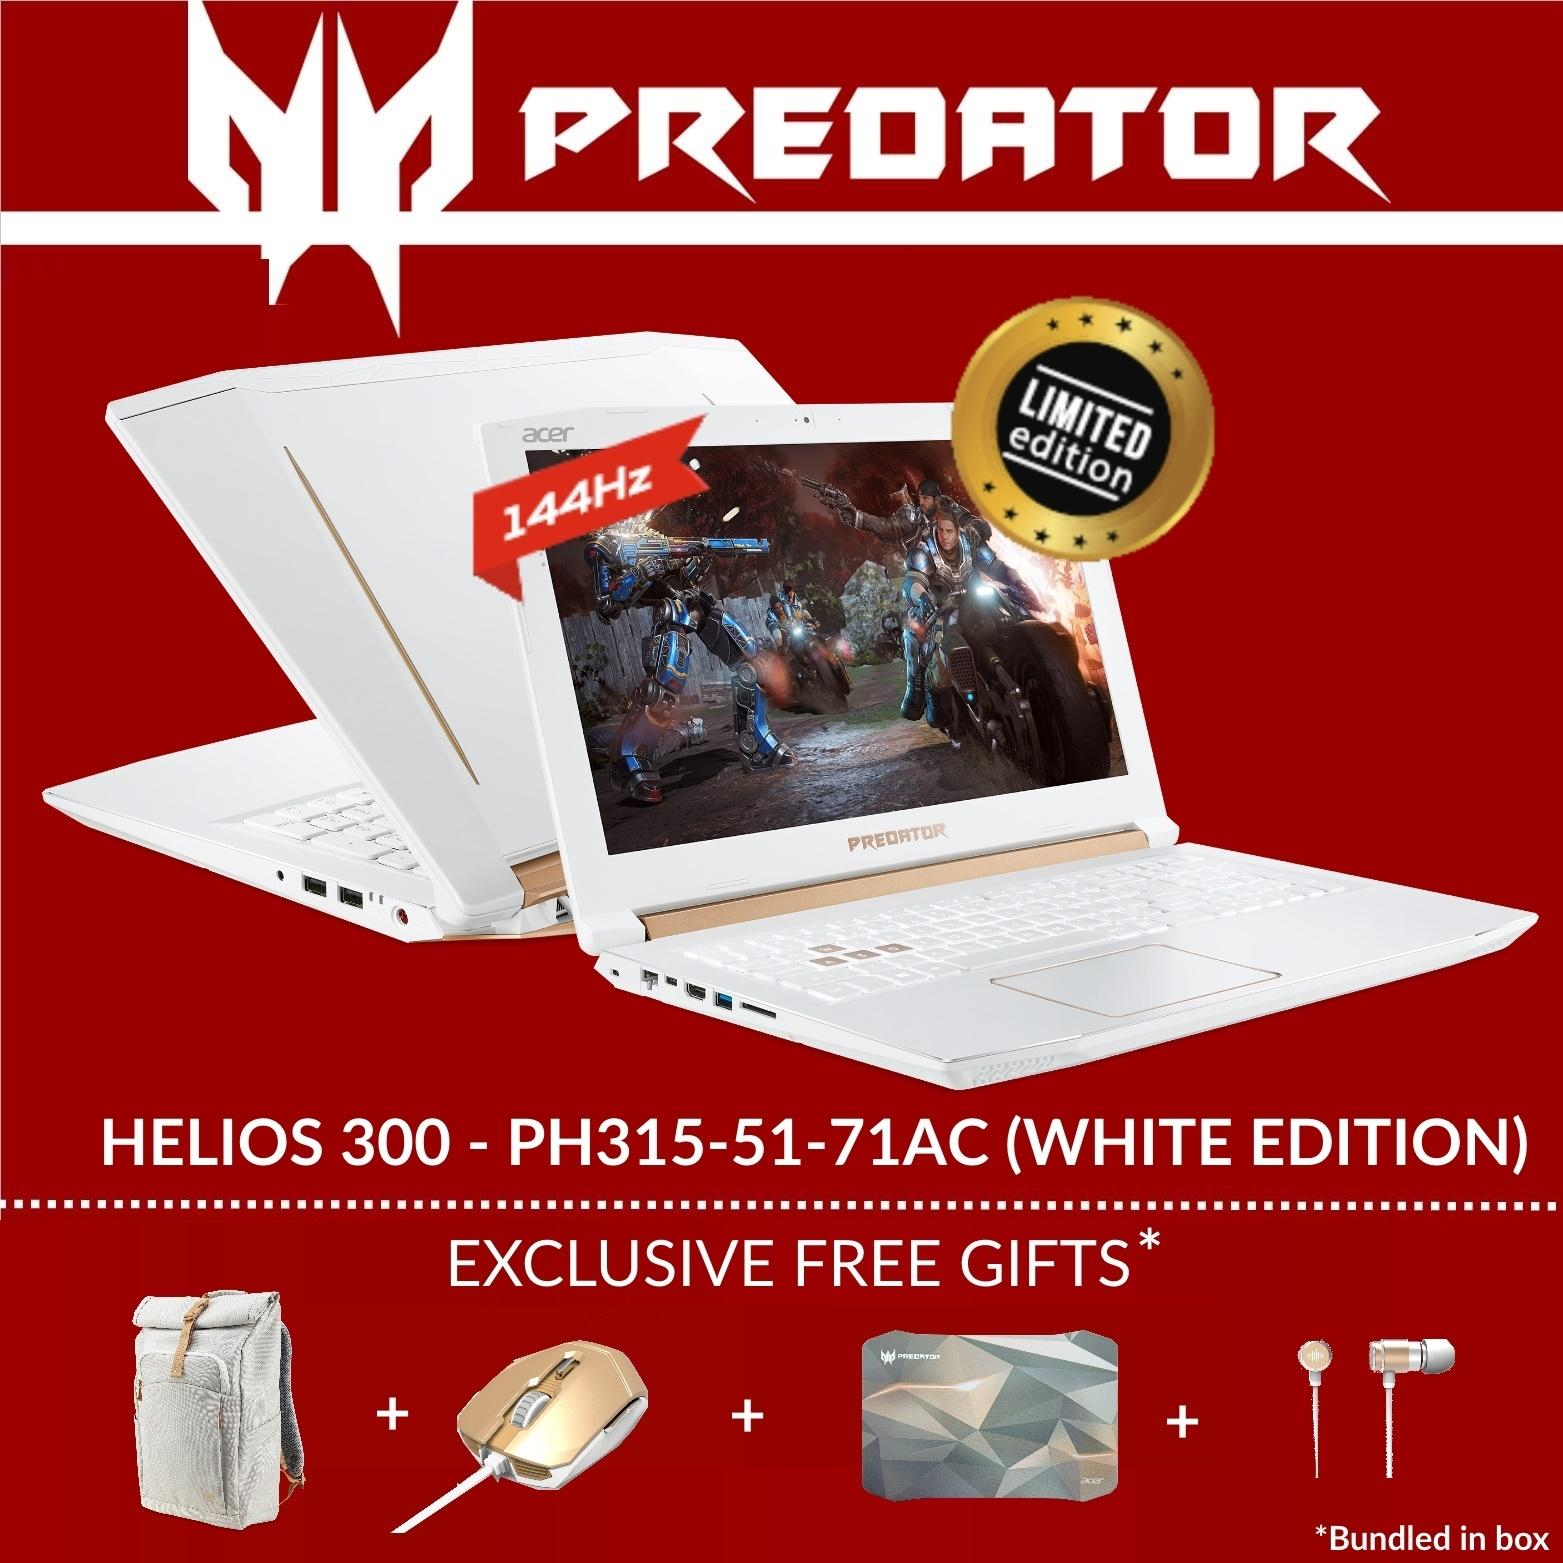 Predator Helios 300 PH315-51-71AC (White Special Edition) Gaming Laptop with 144Hz refresh rate and GTX 1060 Graphics Card